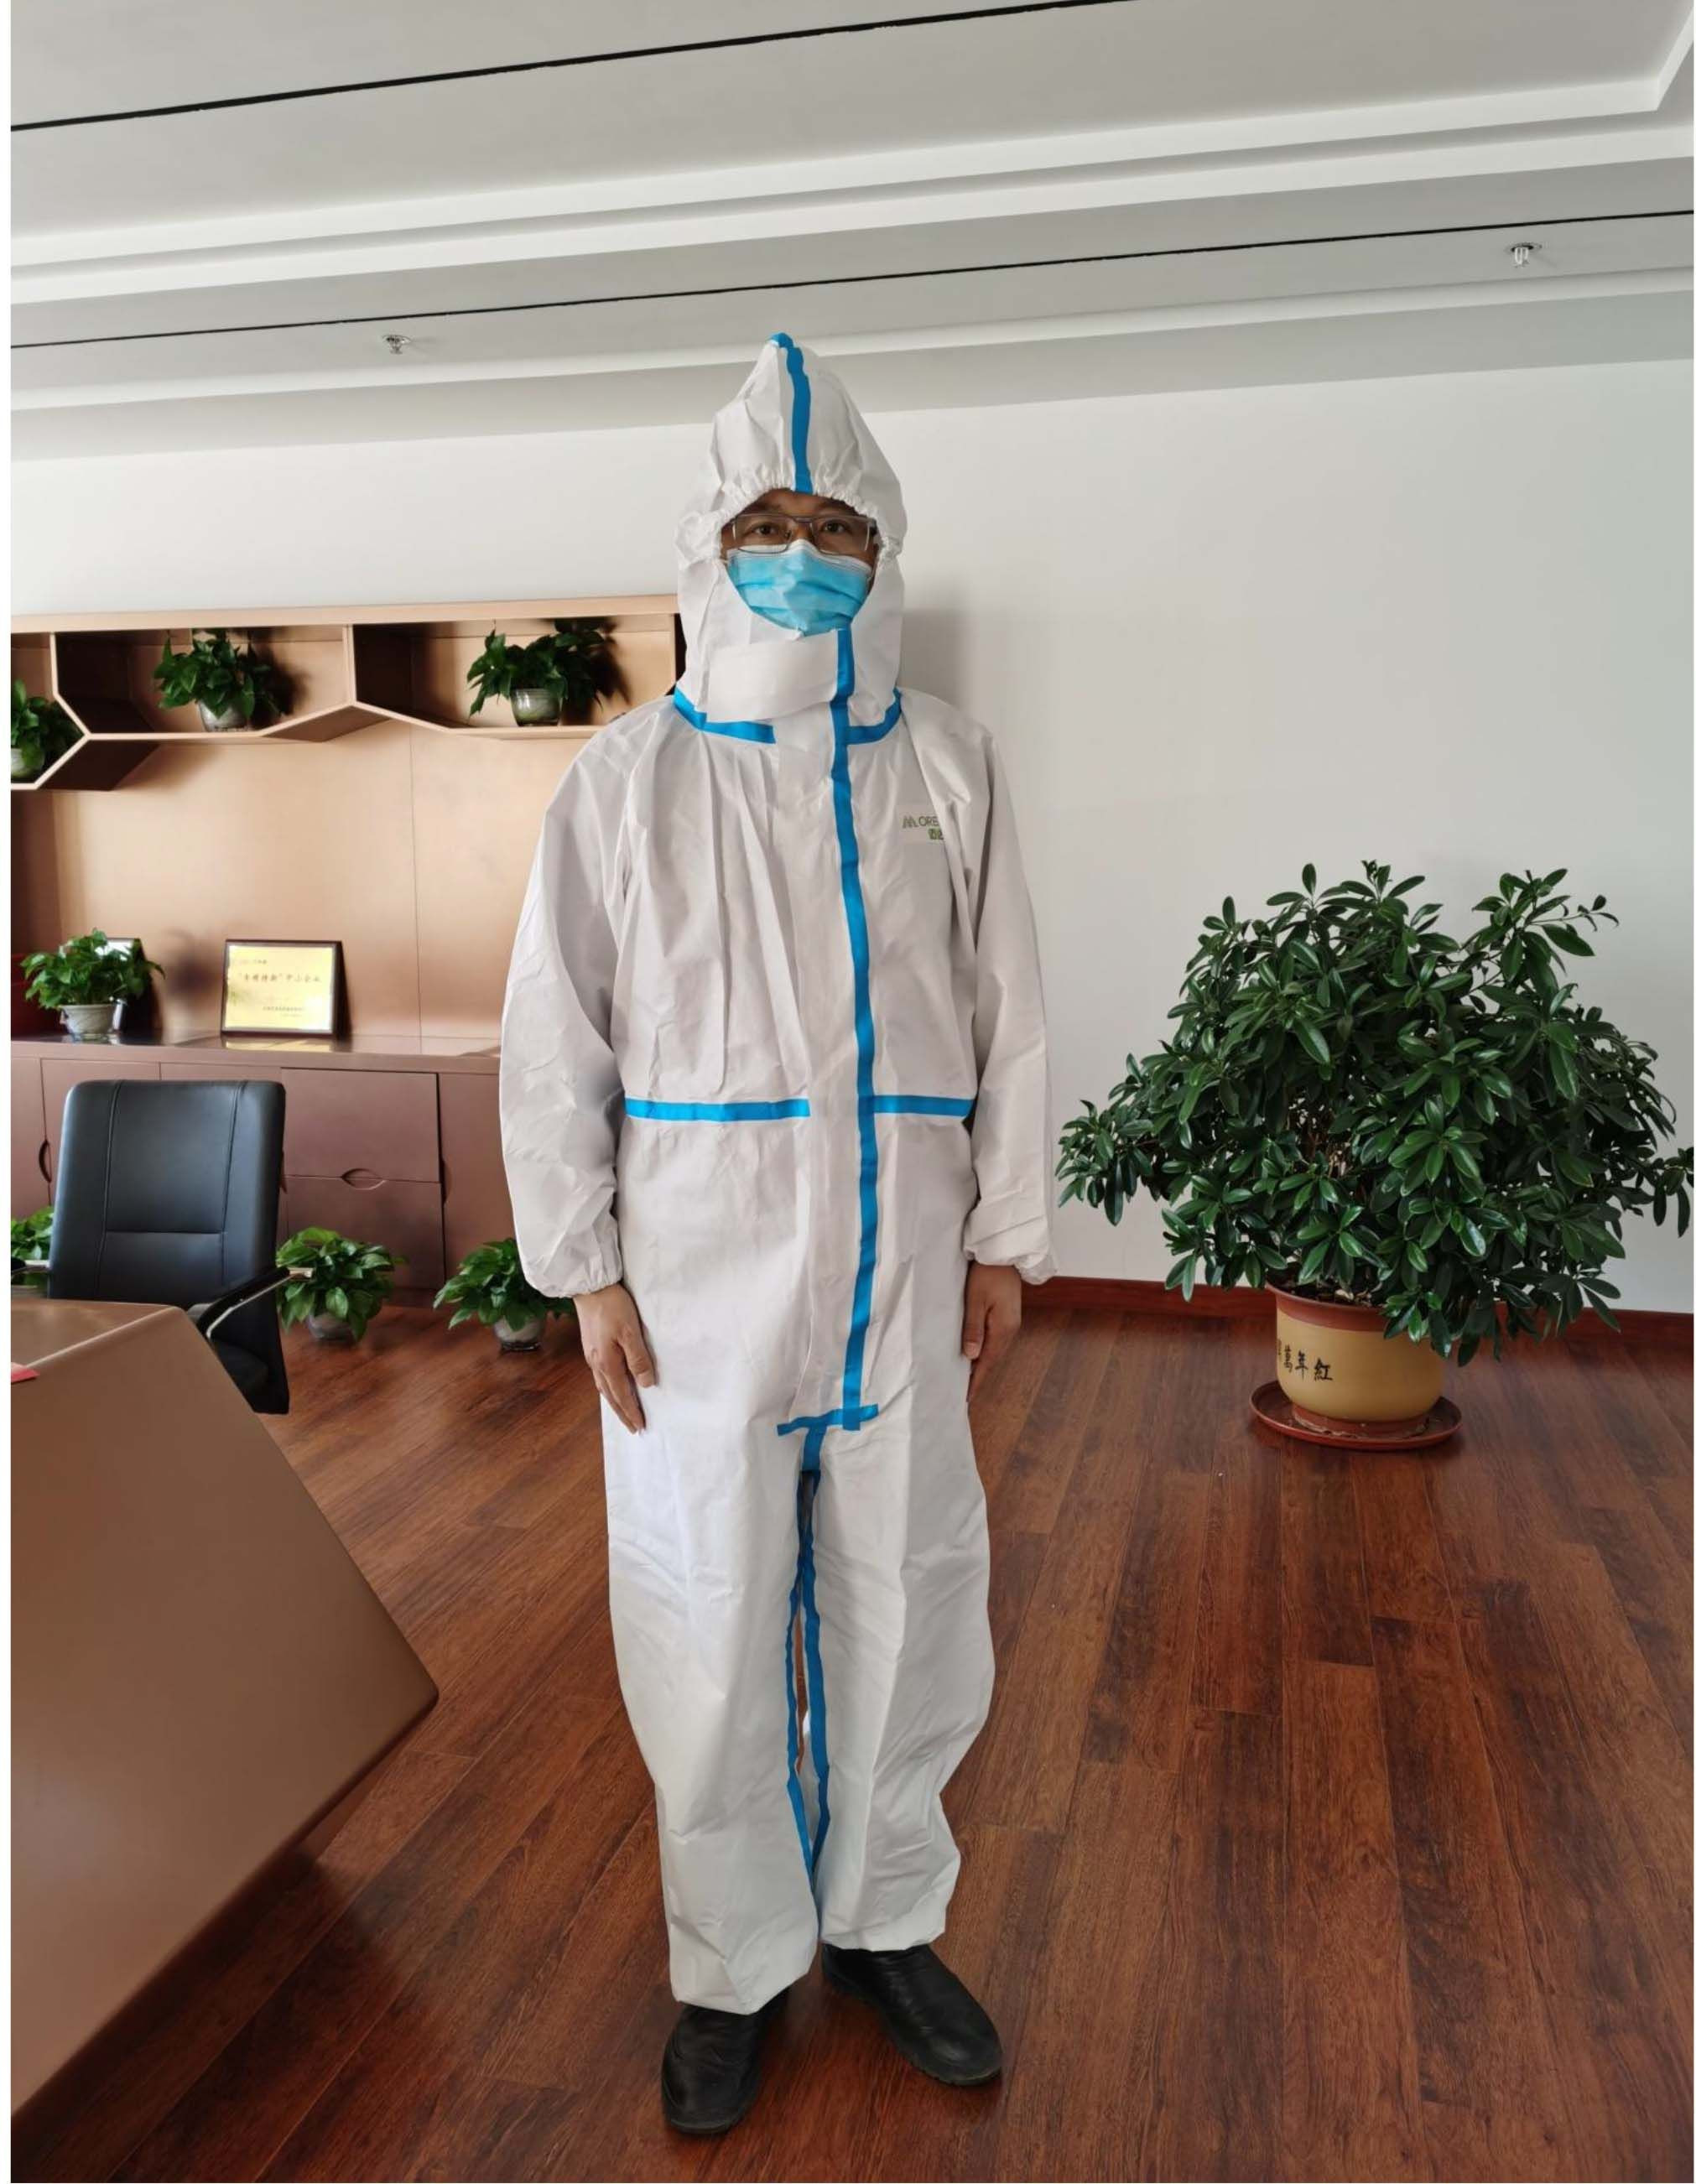 Covid safety isolation gown/ safety clothing